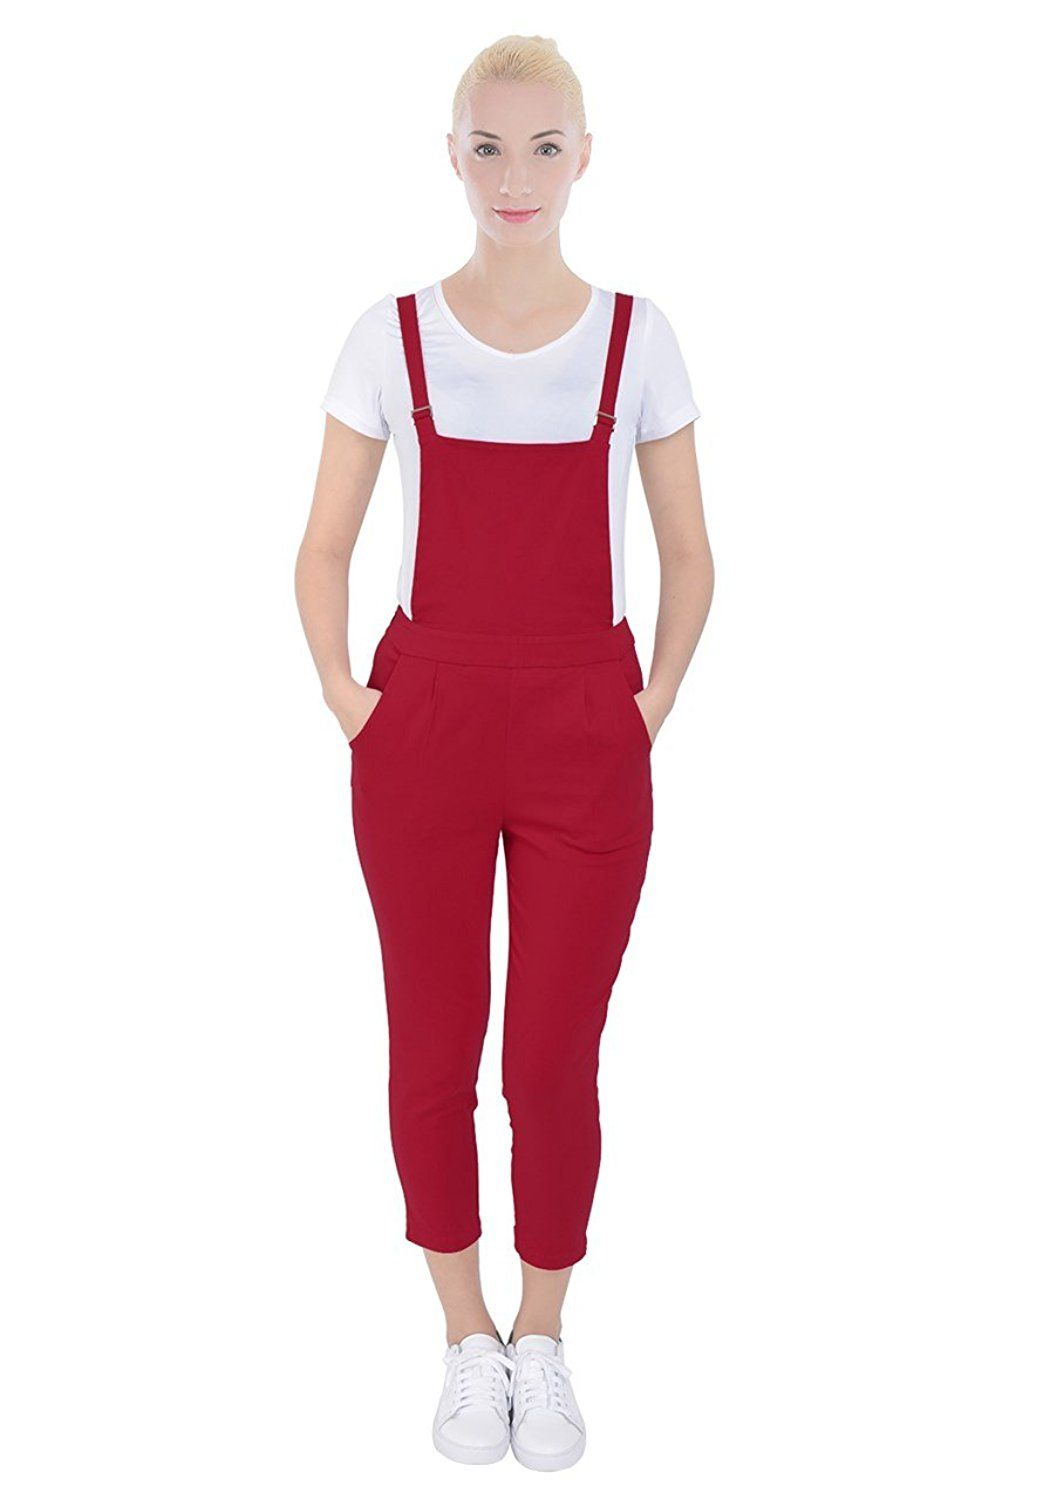 f8ddc6e229 Amazon.com  PattyCandy Womens Jumpsuit Overalls With Fitted Capri Pants Ugly  Christmas Soft Onesie One Piece Pajamas Jumpsuit  Clothing